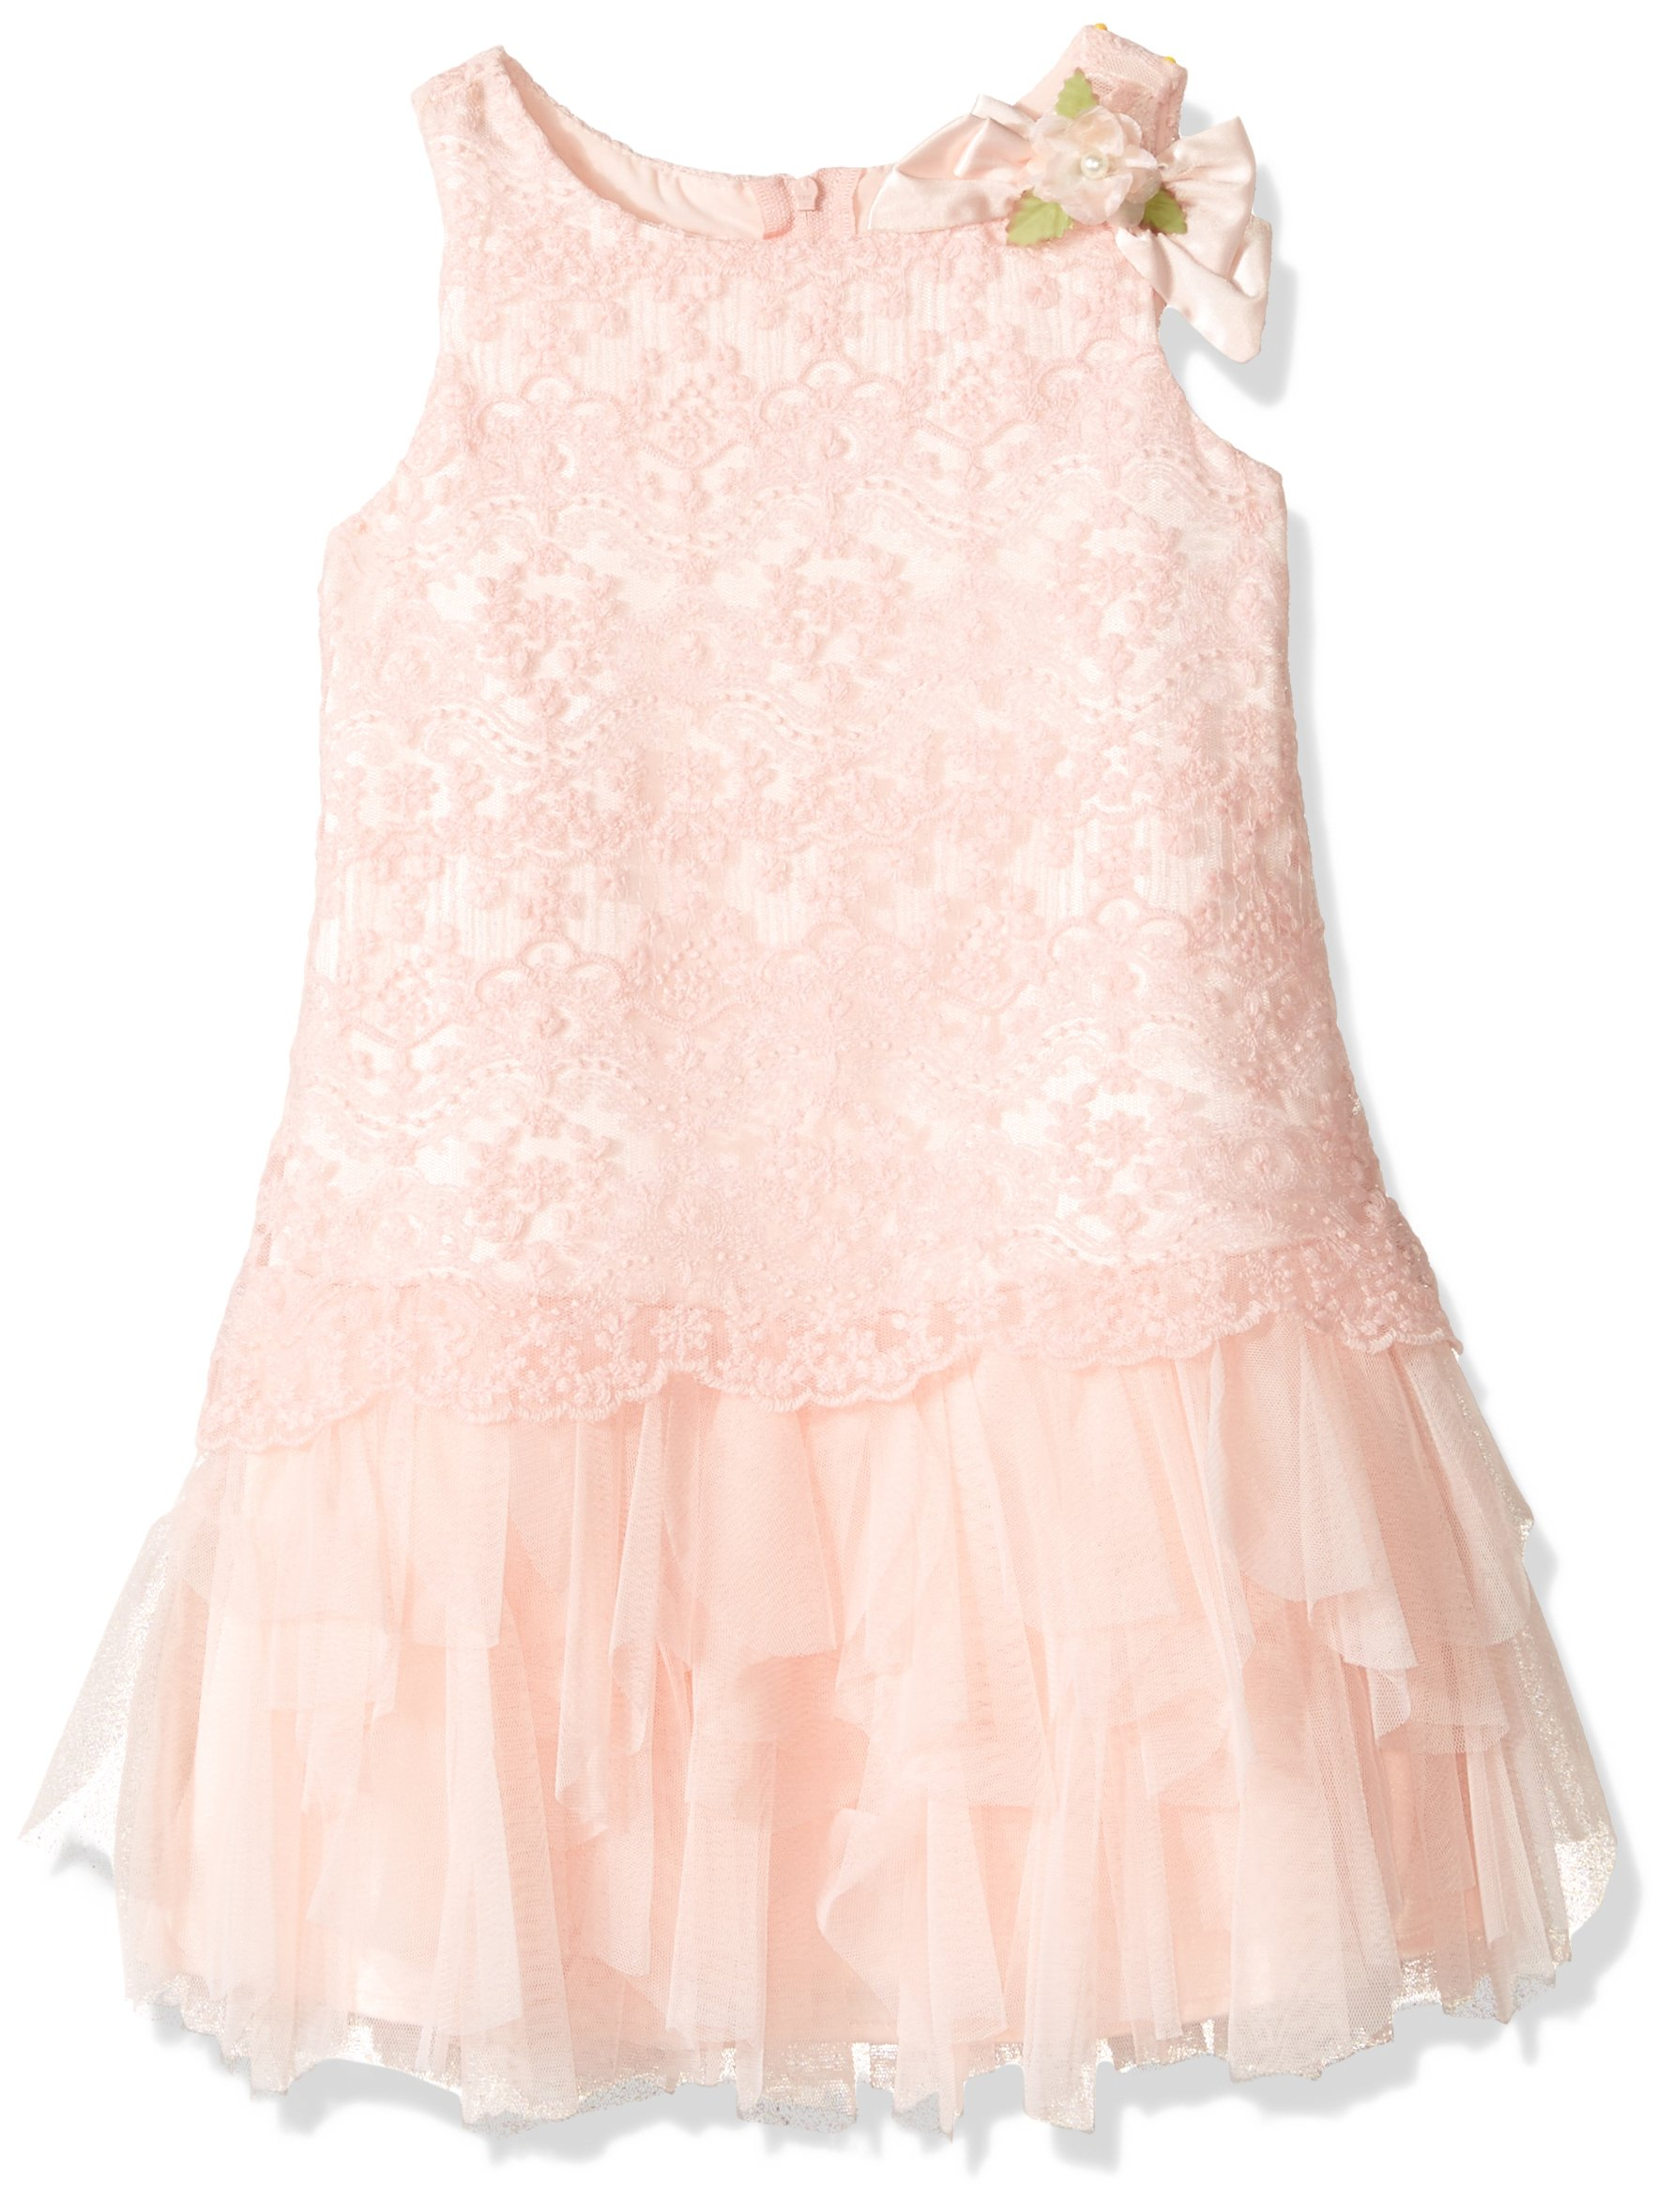 Biscotti Little Girls' Once Upon a Wish Dress With Embroidered Bodice, Pink, 5